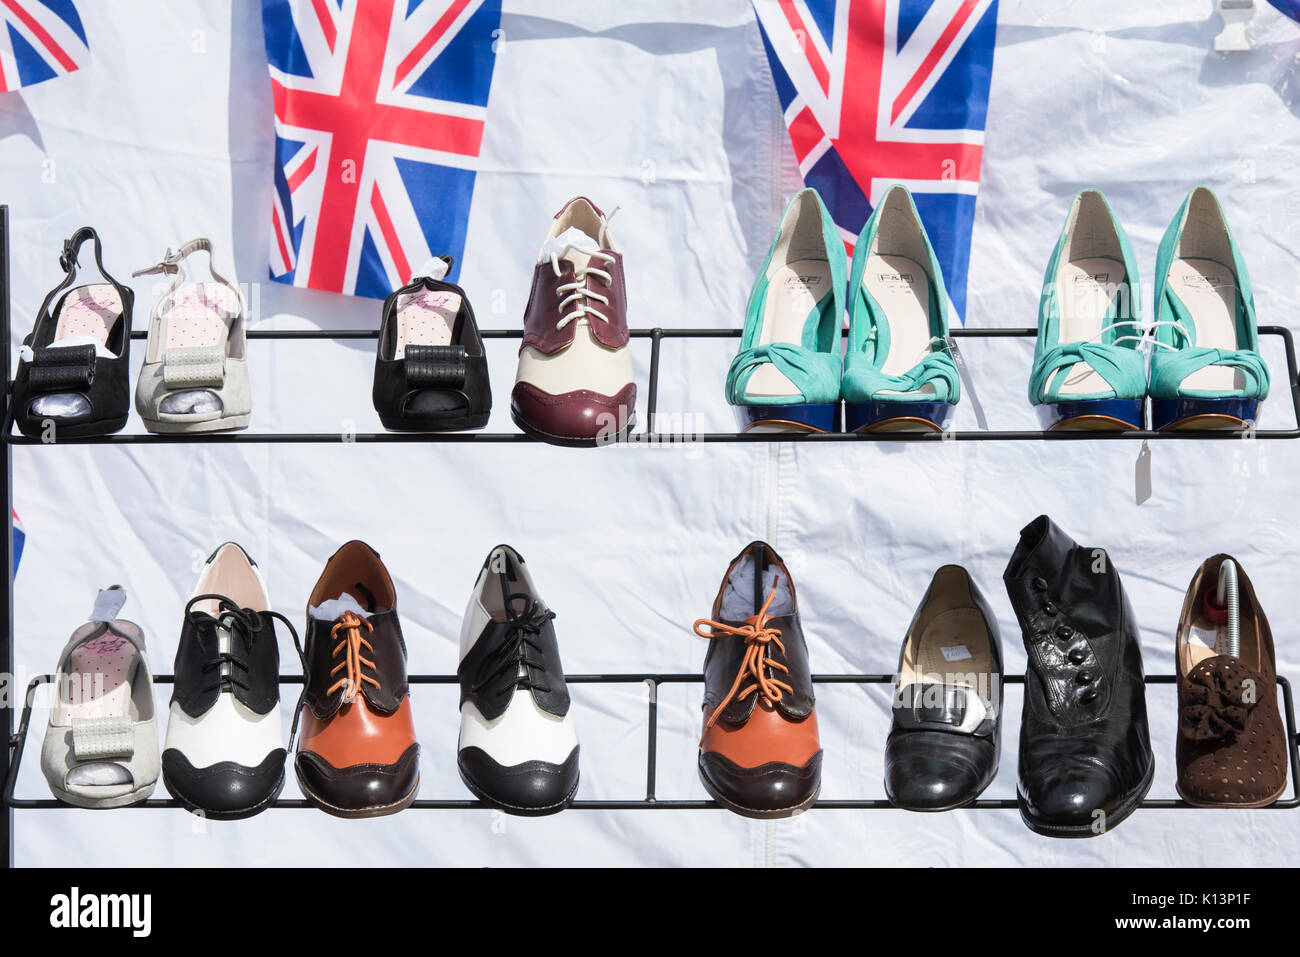 Vintage style mens and ladies shoes for sale on a stand at a vintage retro festival. UK - Stock Image